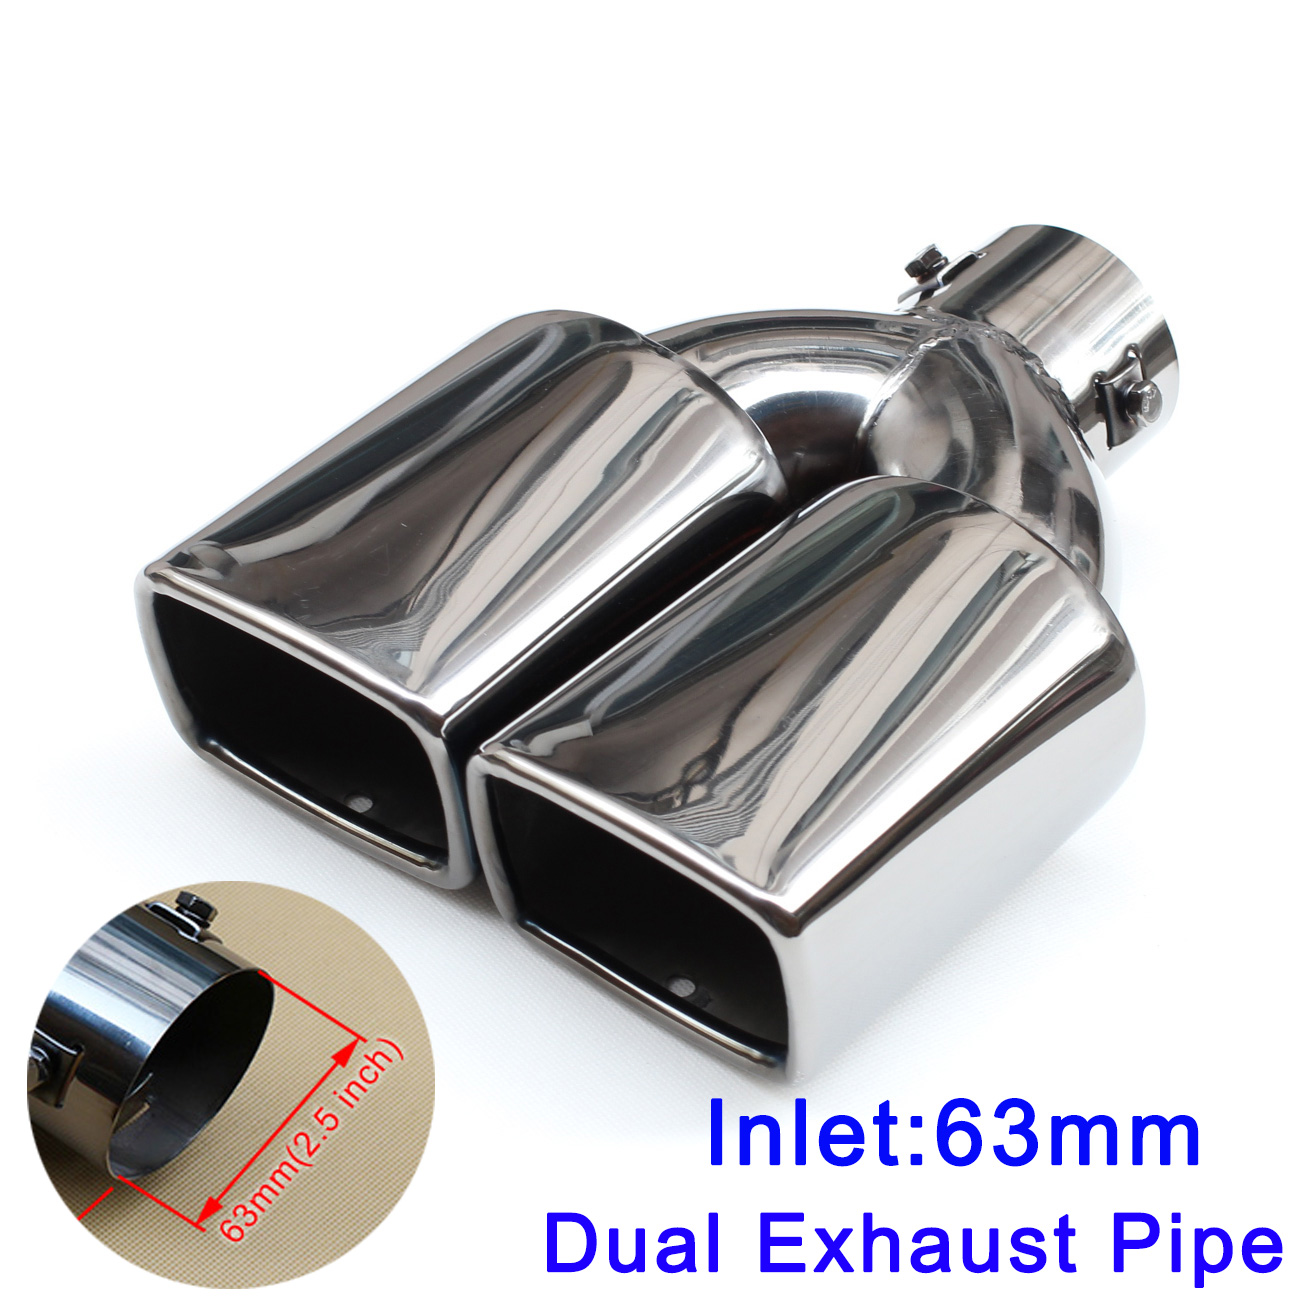 Car Auto Rear Tail Throat Liner Stainless Steel Dual Exhaust Muffler Pipe For MERCEDES BENZ AMG